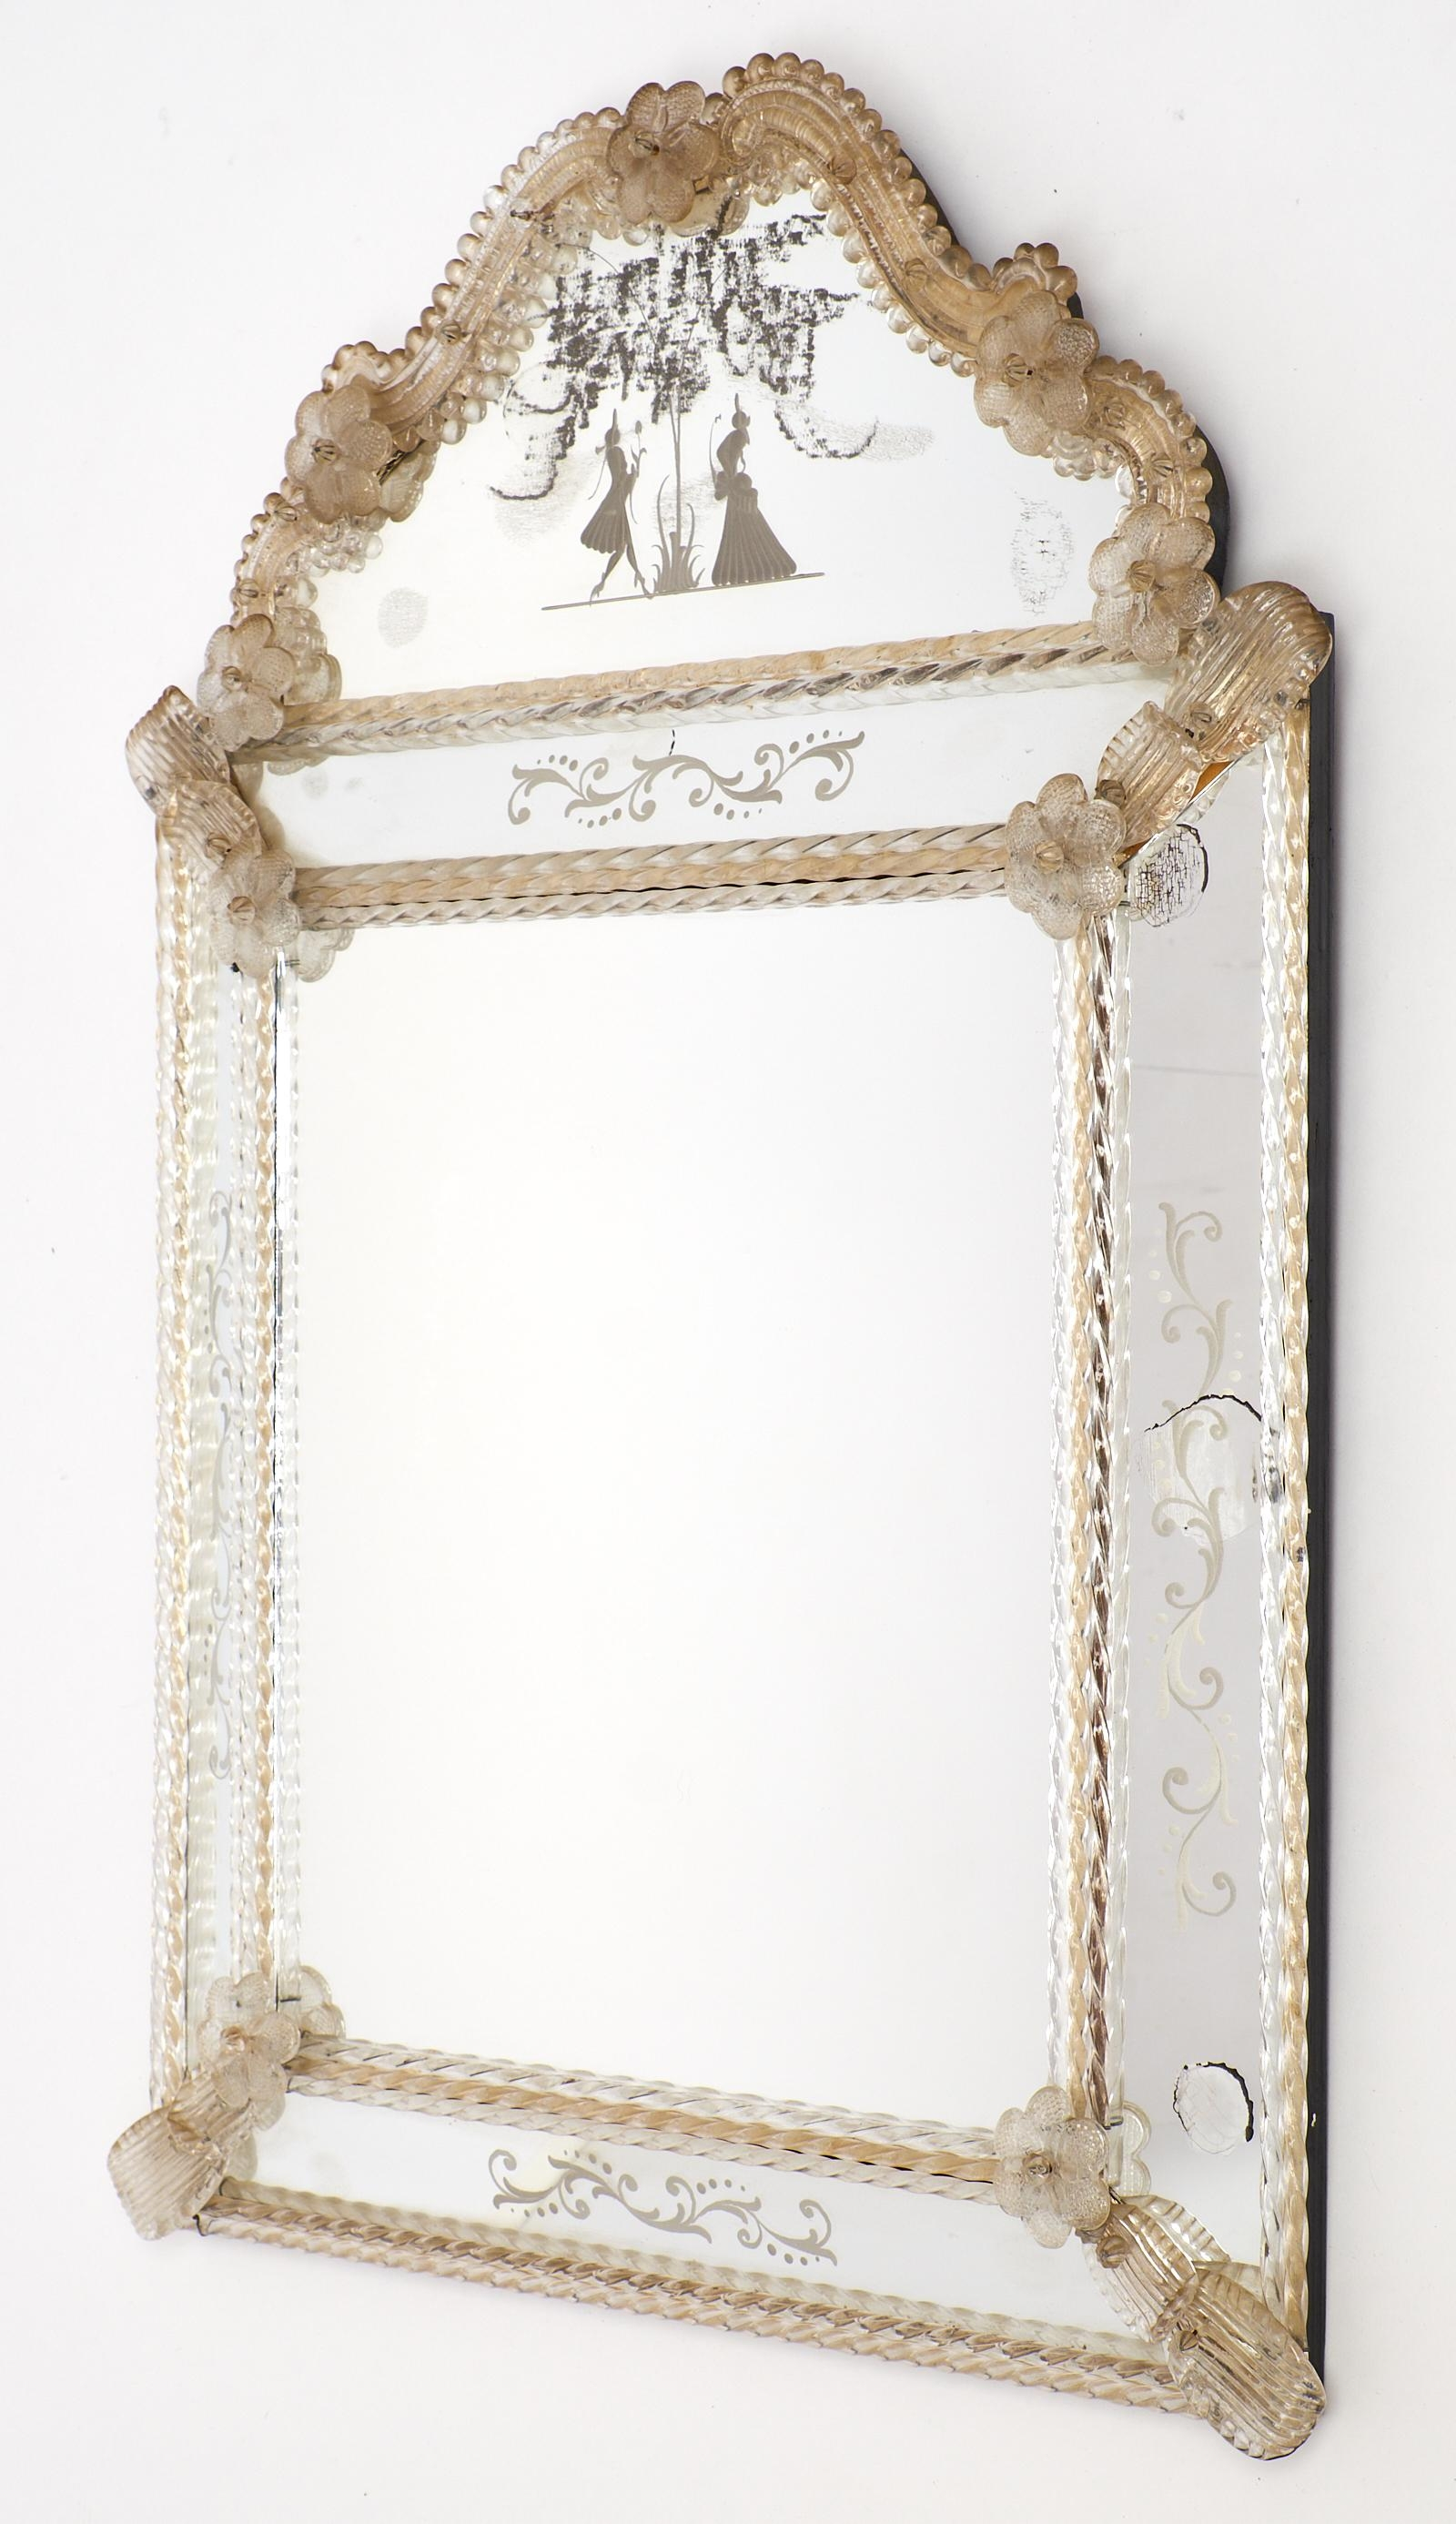 Venetian Mirror For Sale Malaysia | Vanity Decoration Regarding Venetian Glass Mirrors Sale (View 6 of 20)